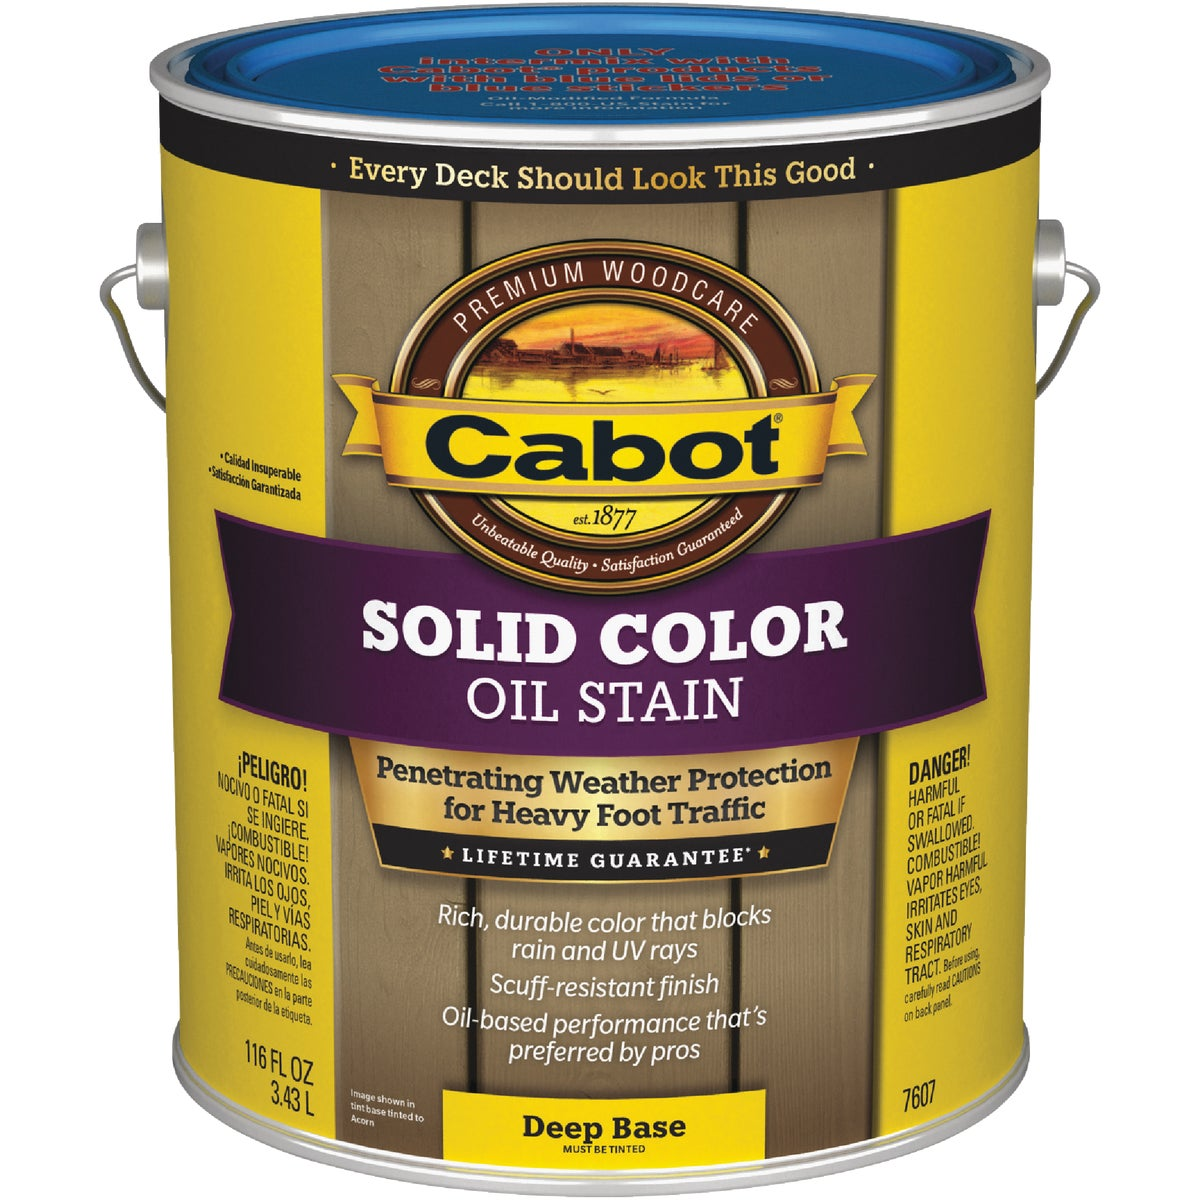 DEEP BS SOLID DECK STAIN